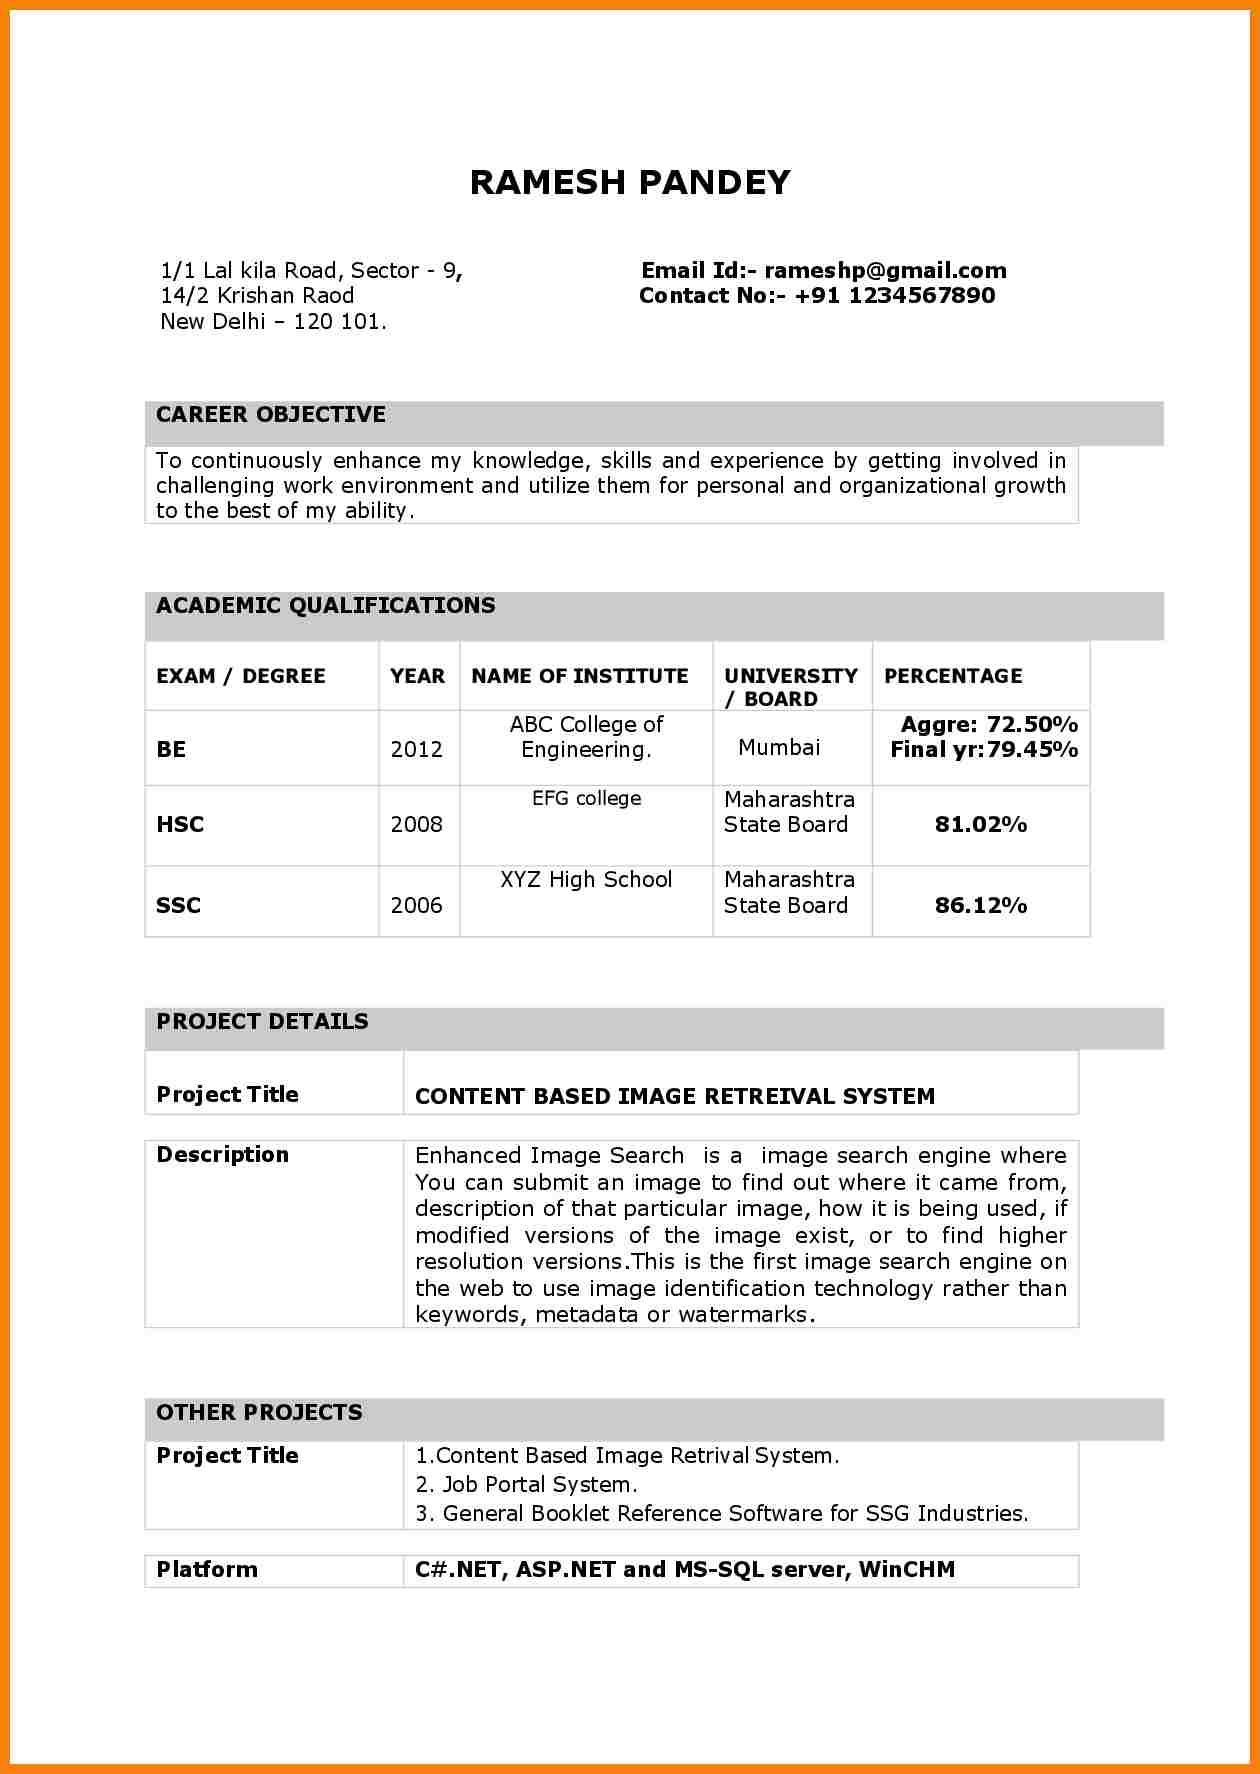 Resumes For Teachers Image Result For Teachers Resume Format  Amreen  Pinterest